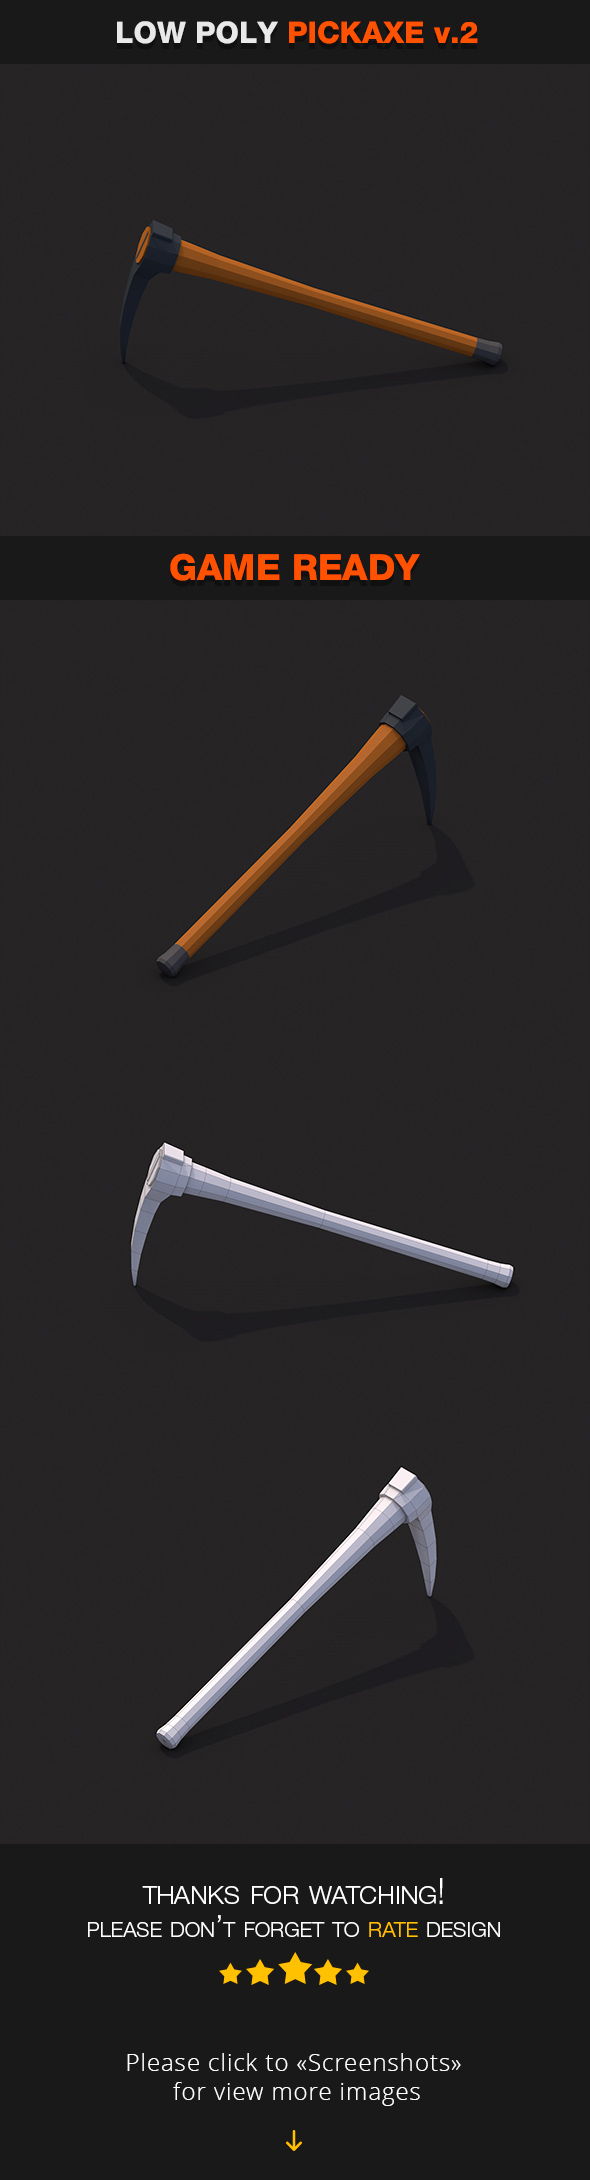 Low Poly Pickaxe v.2 - 3DOcean Item for Sale